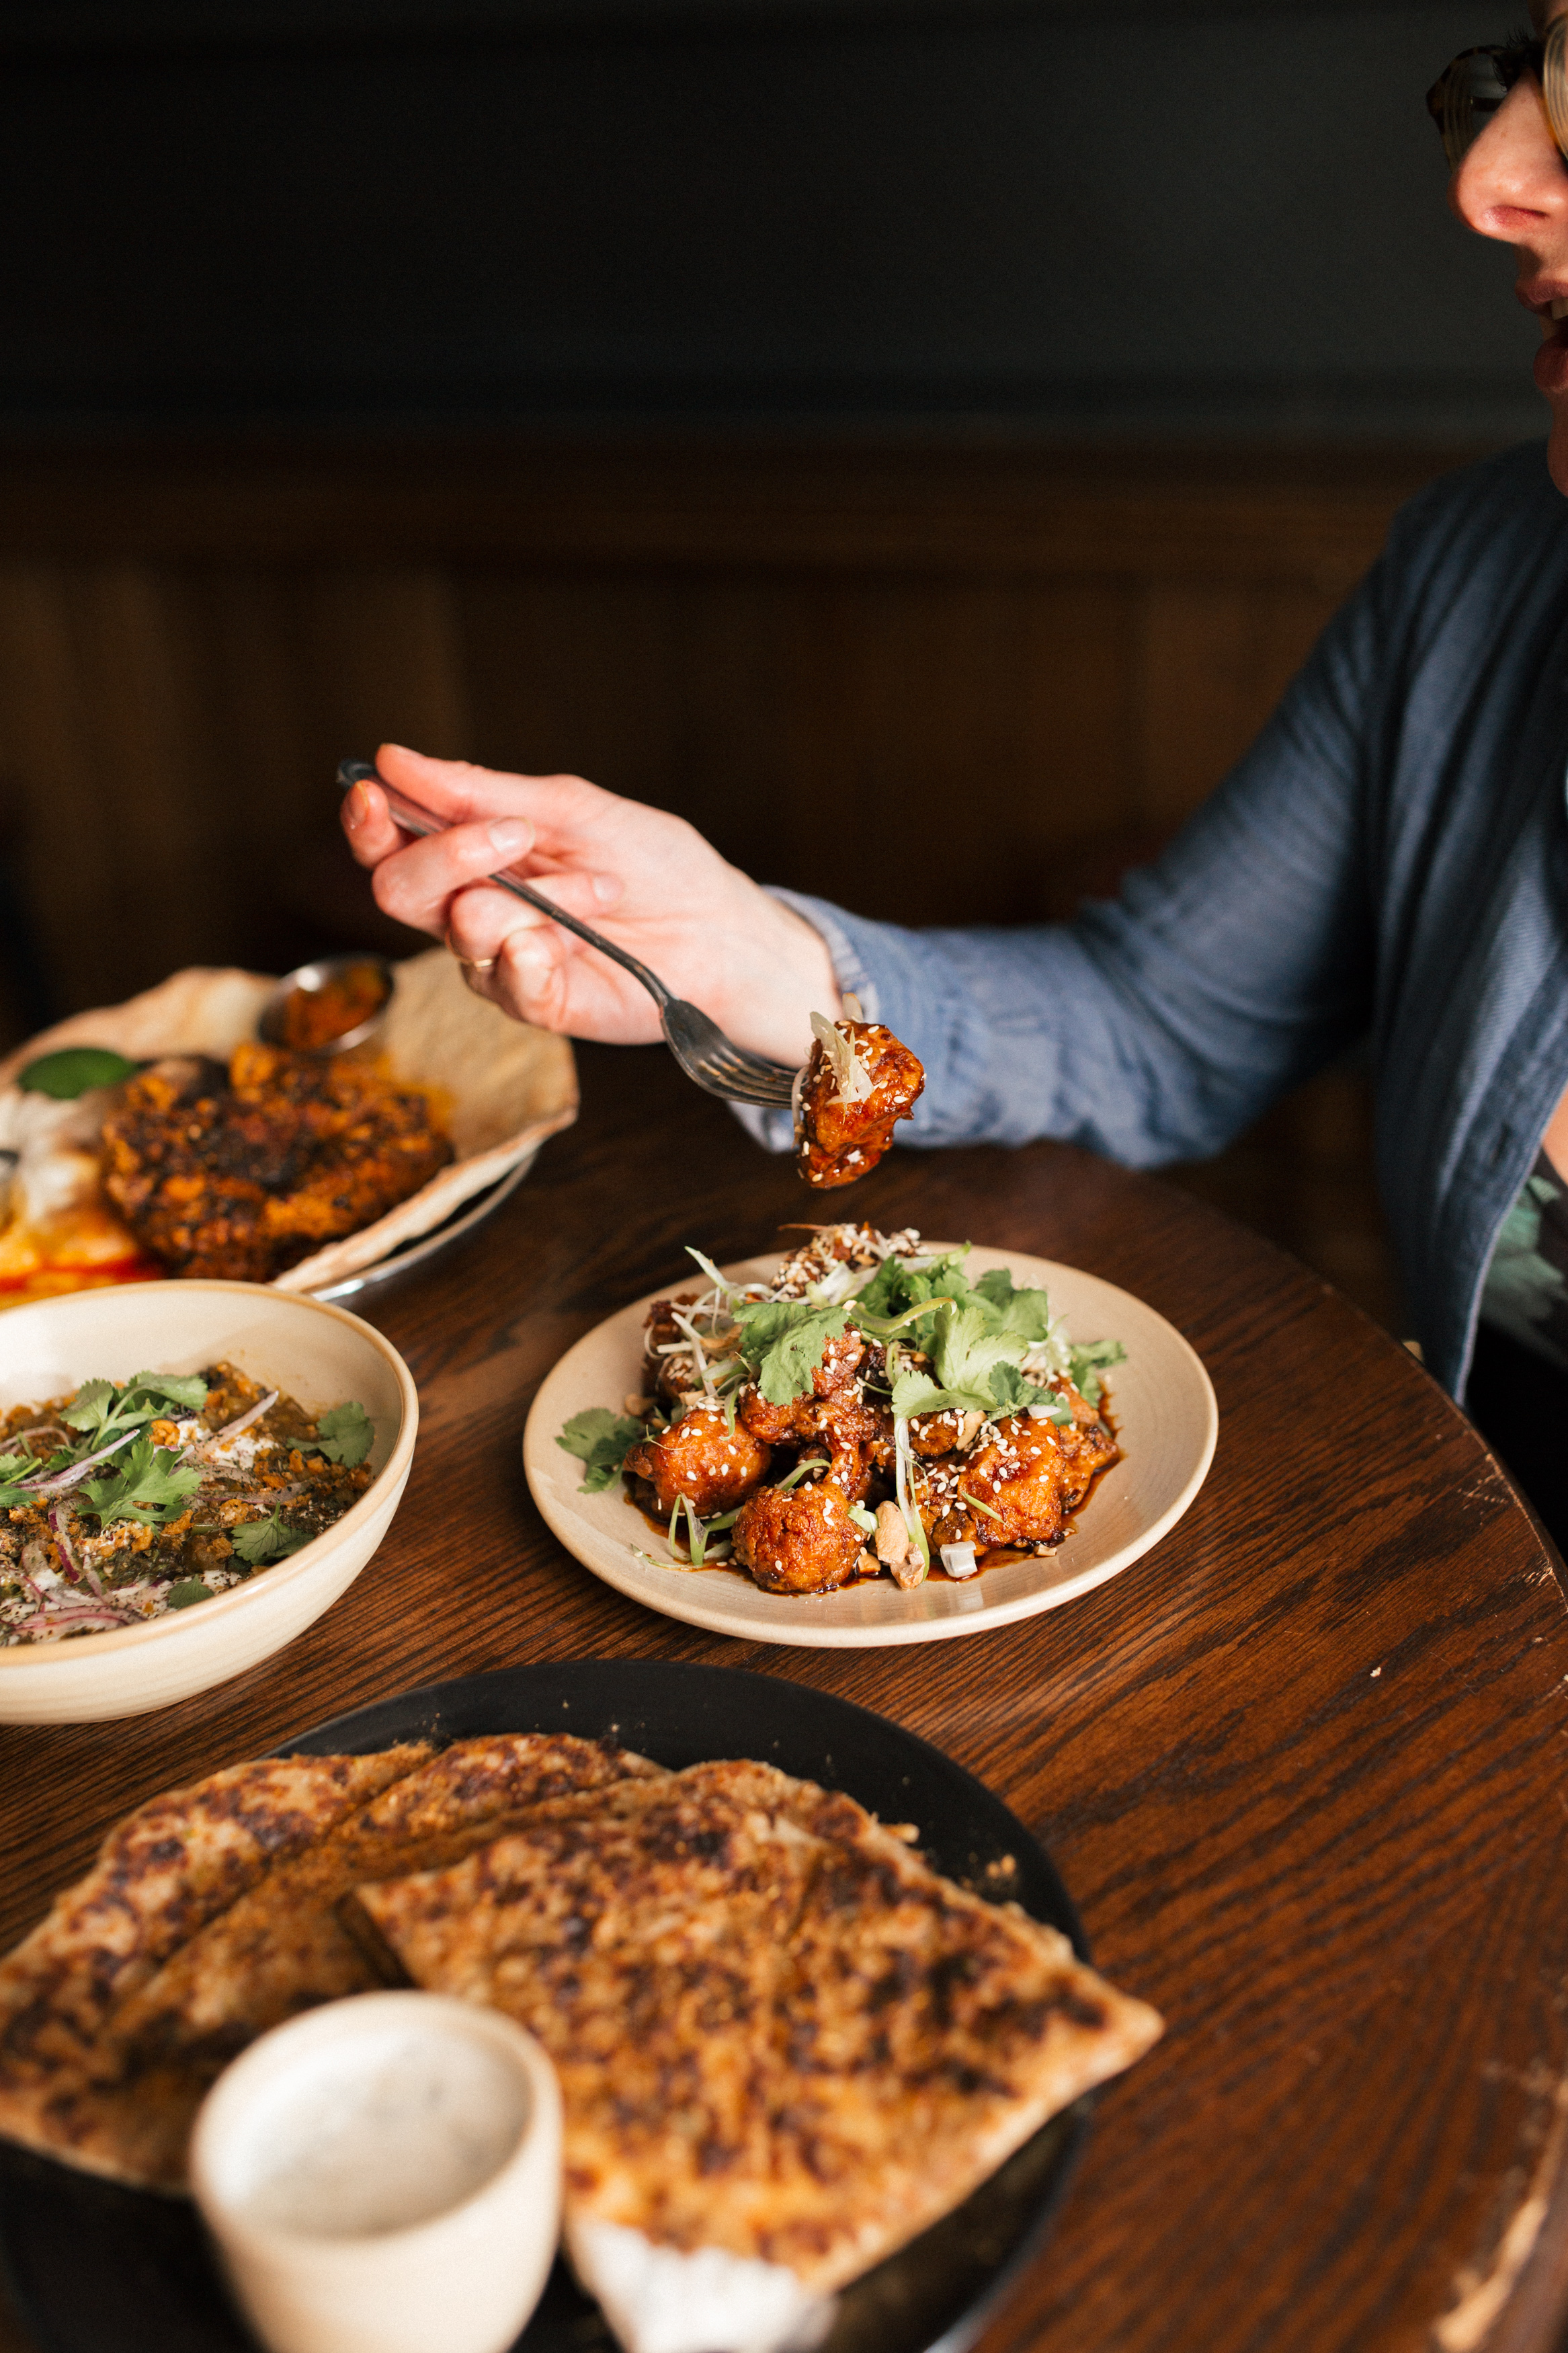 chicago food photography // sandy noto